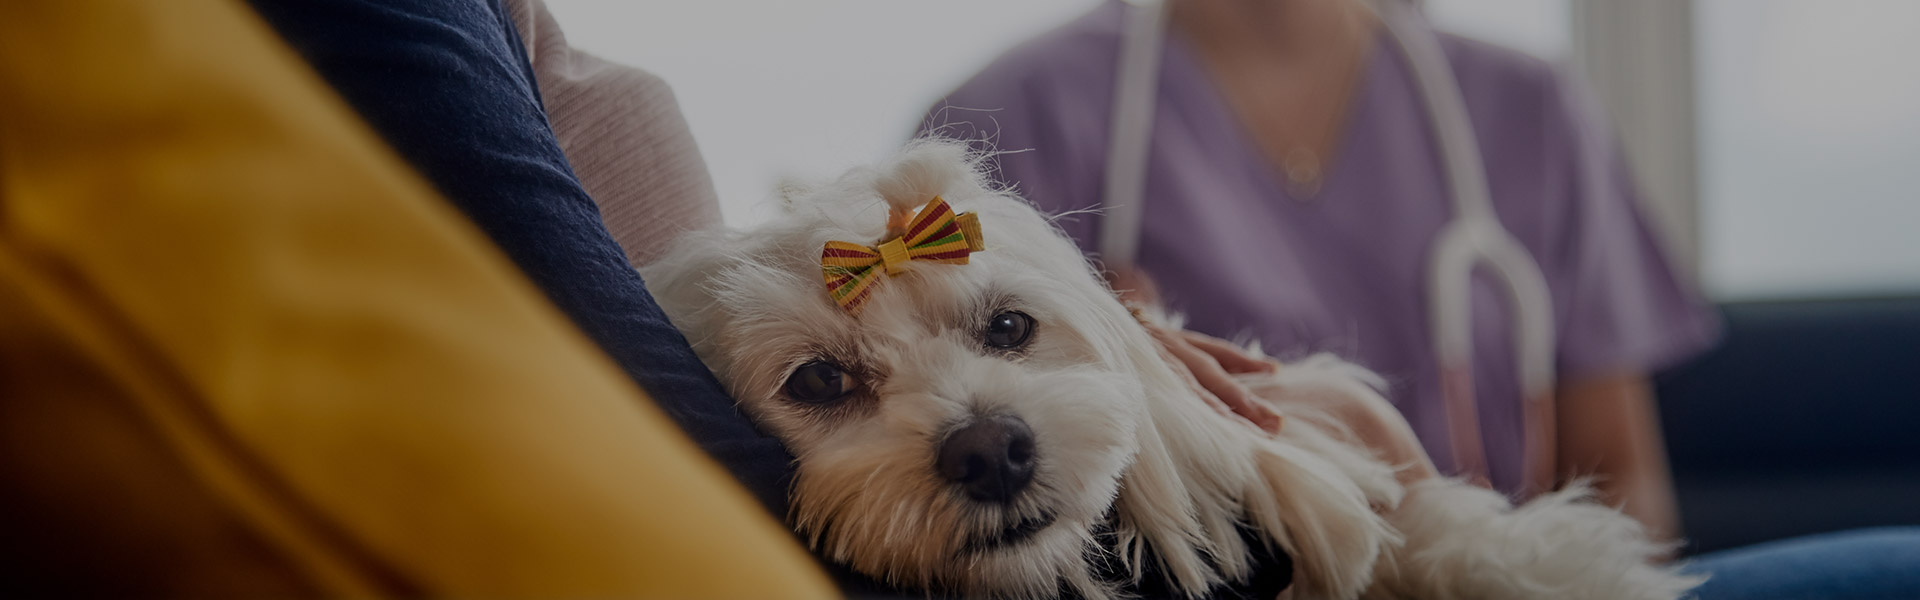 small white dog with bow in fur